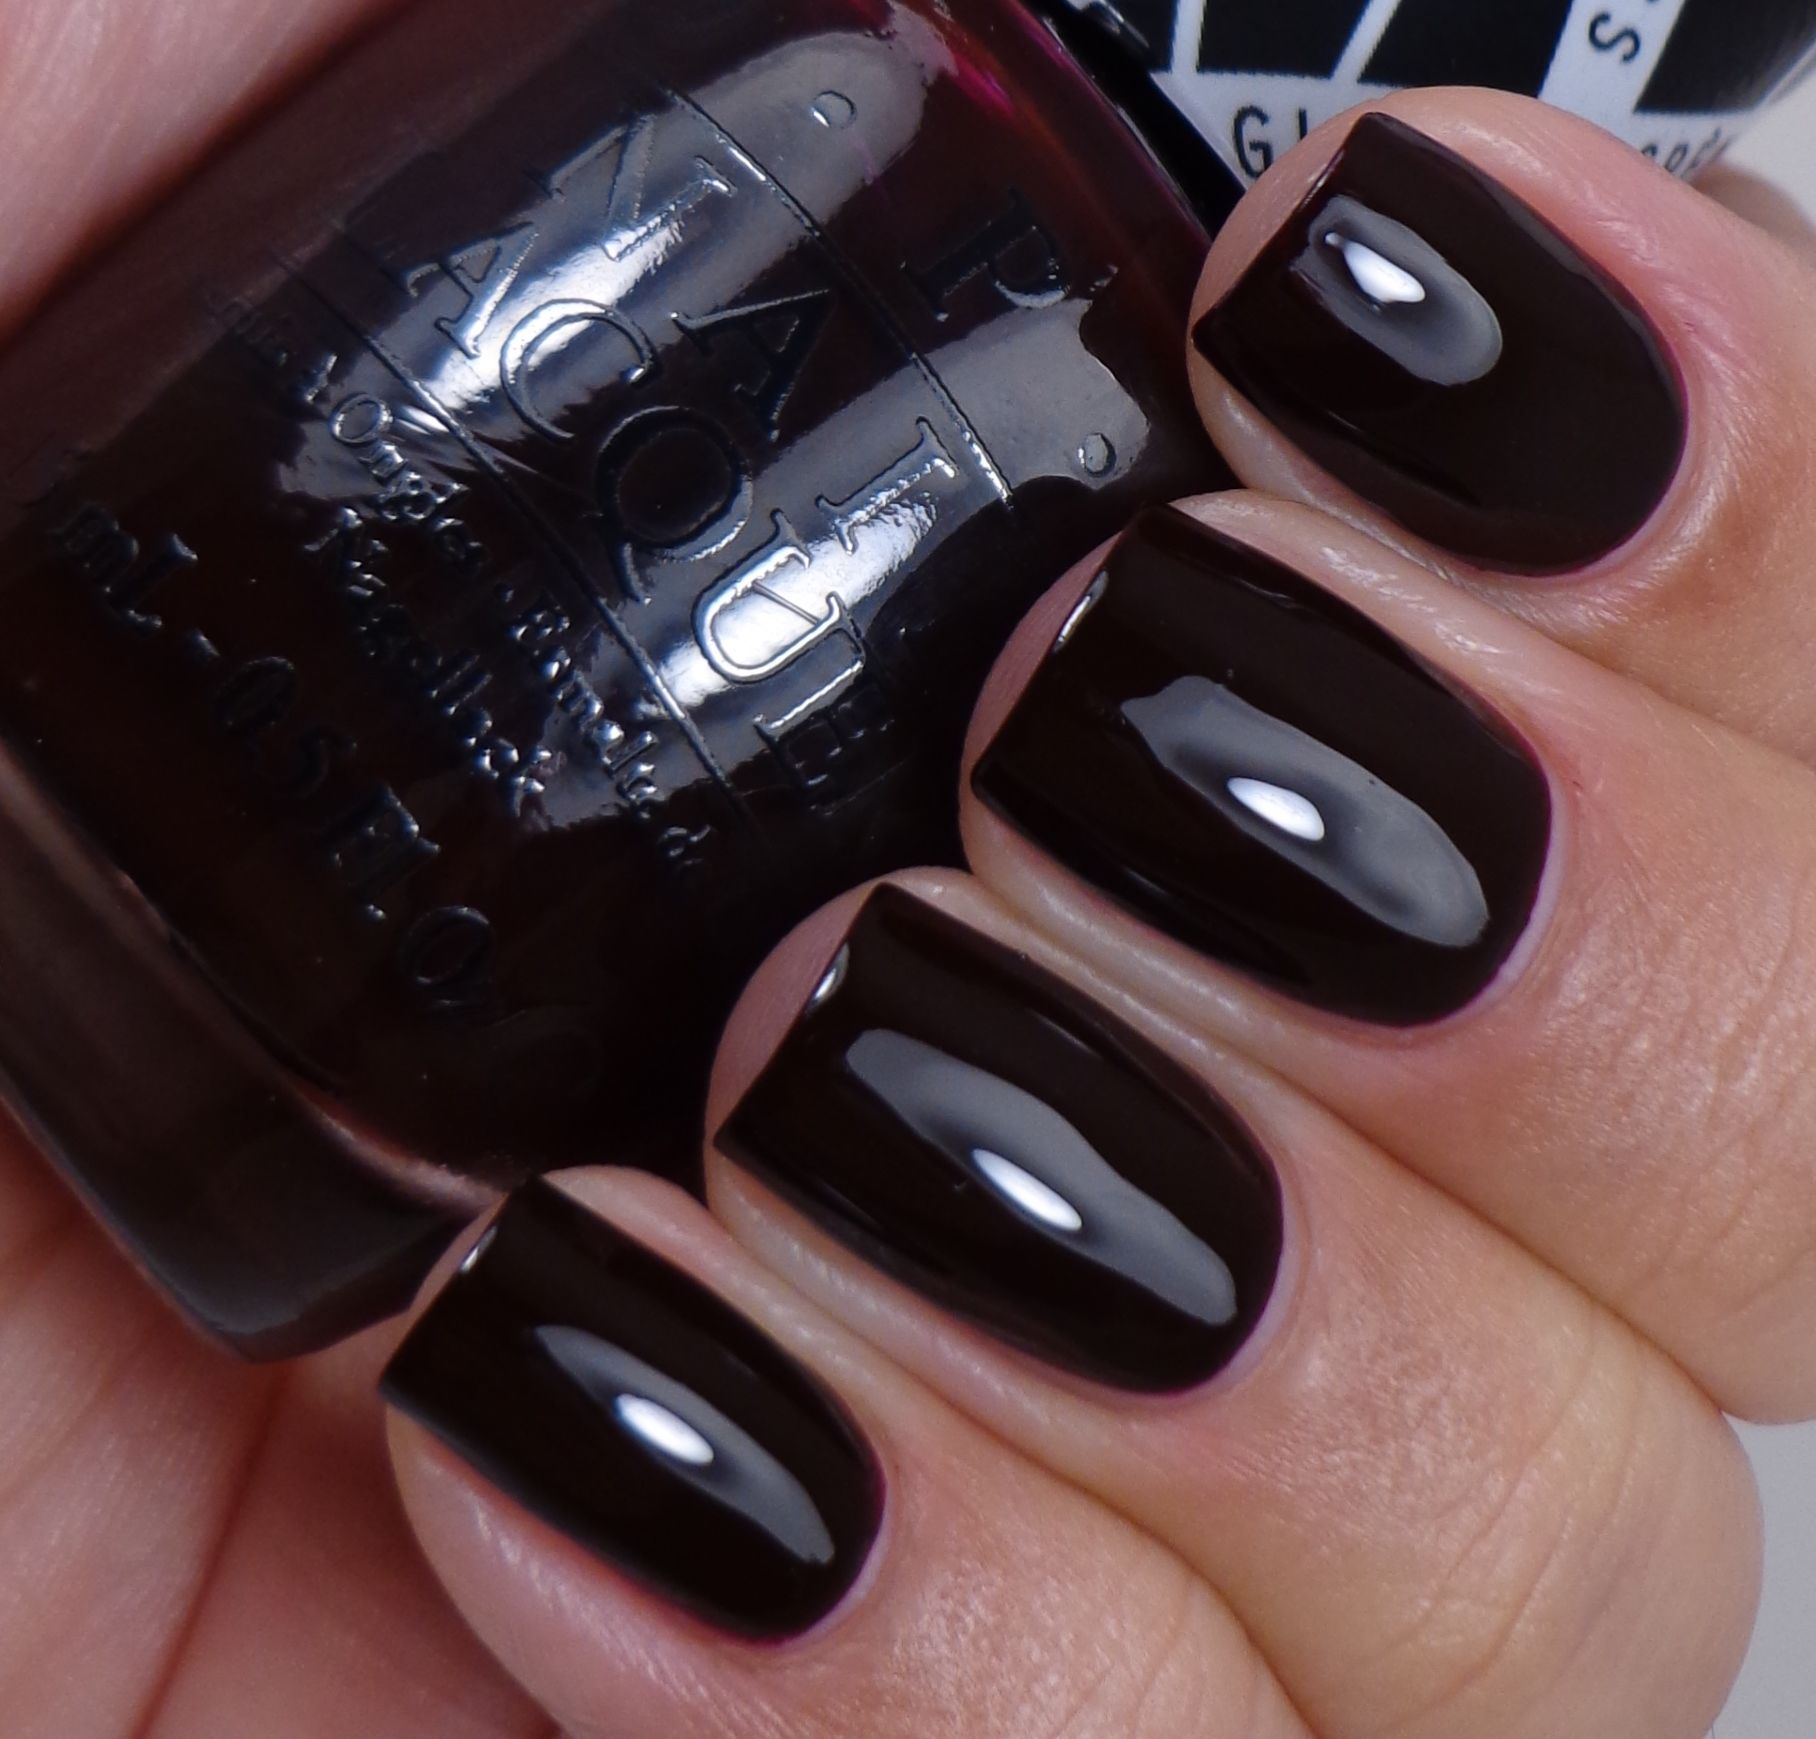 OPI- I Sing in Color swatch | My POLISH stash | Pinterest | OPI ...